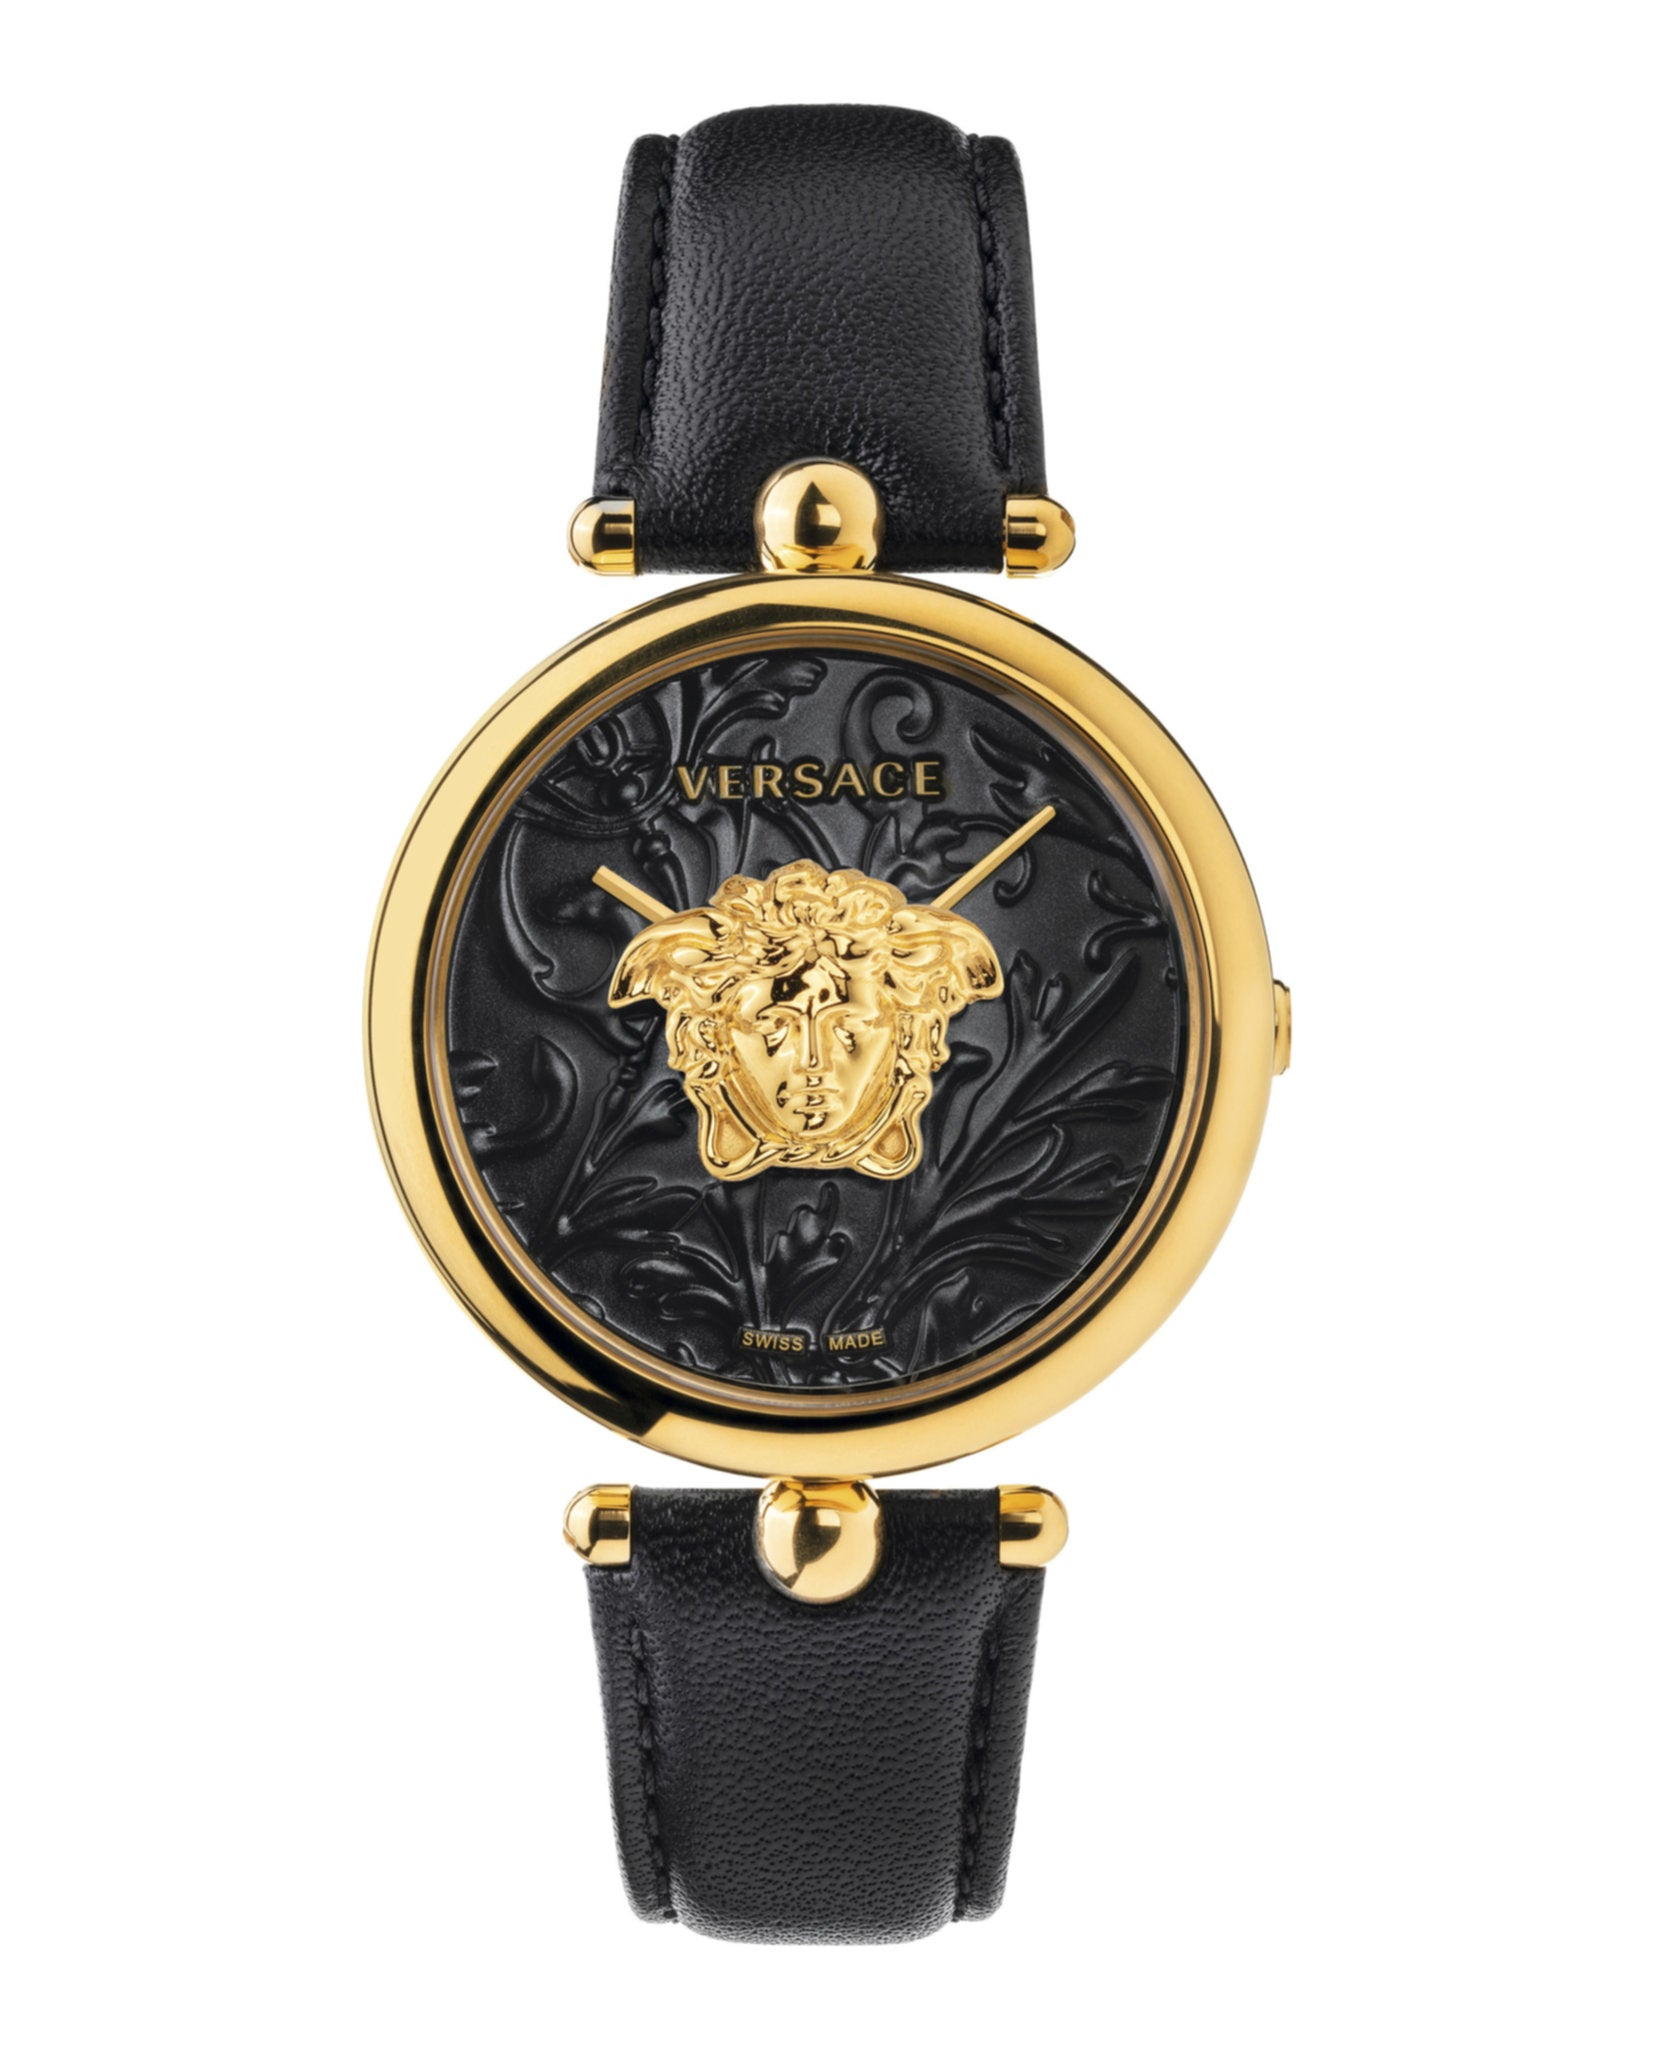 Palazzo Empire Barocco Leather Watch